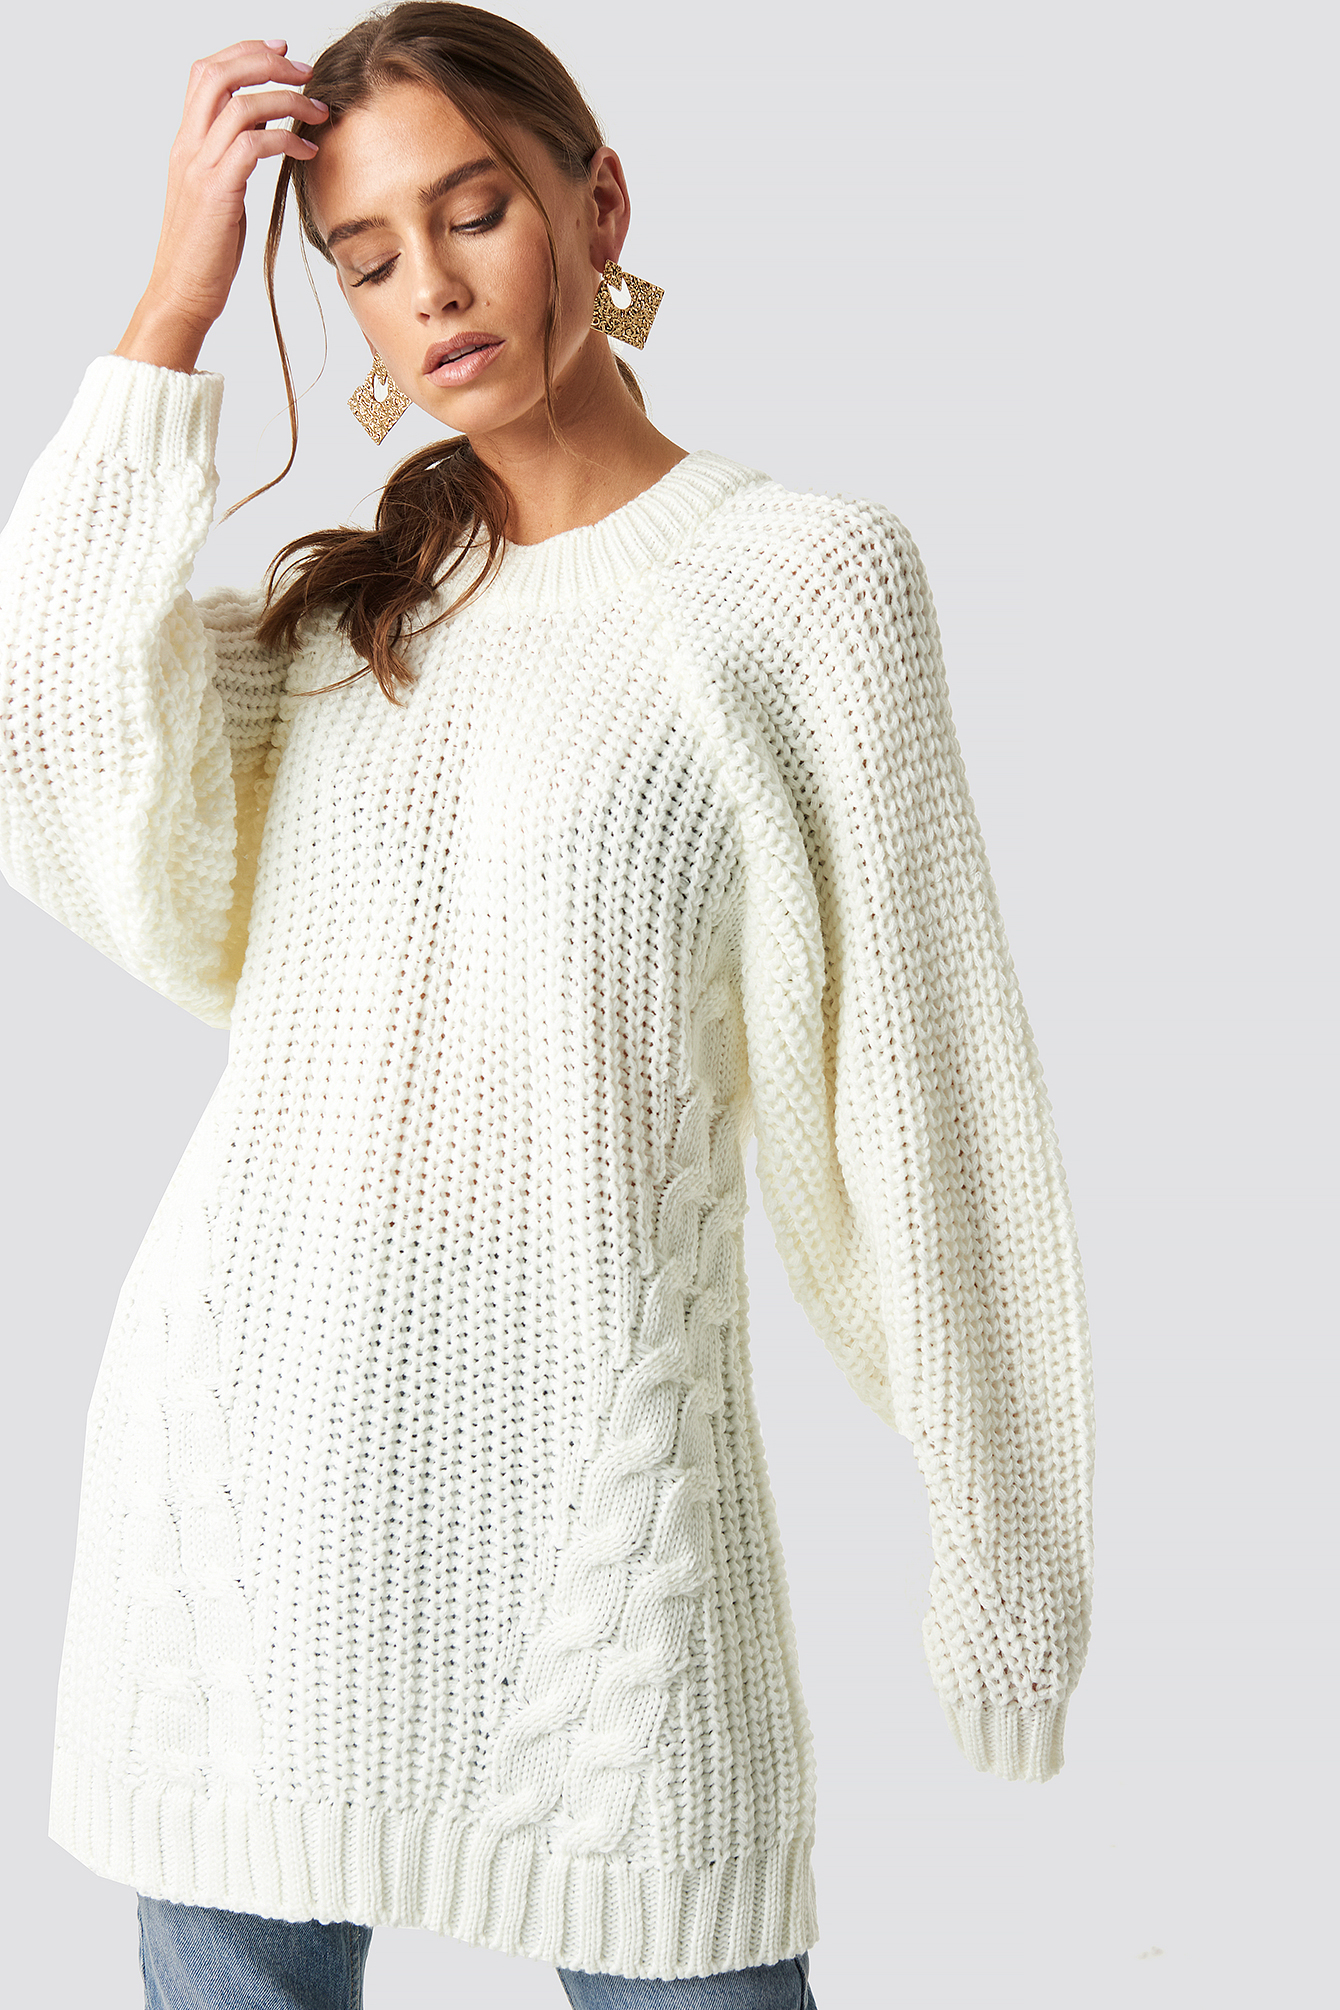 Oversized Knitted Sweater White In Ecru